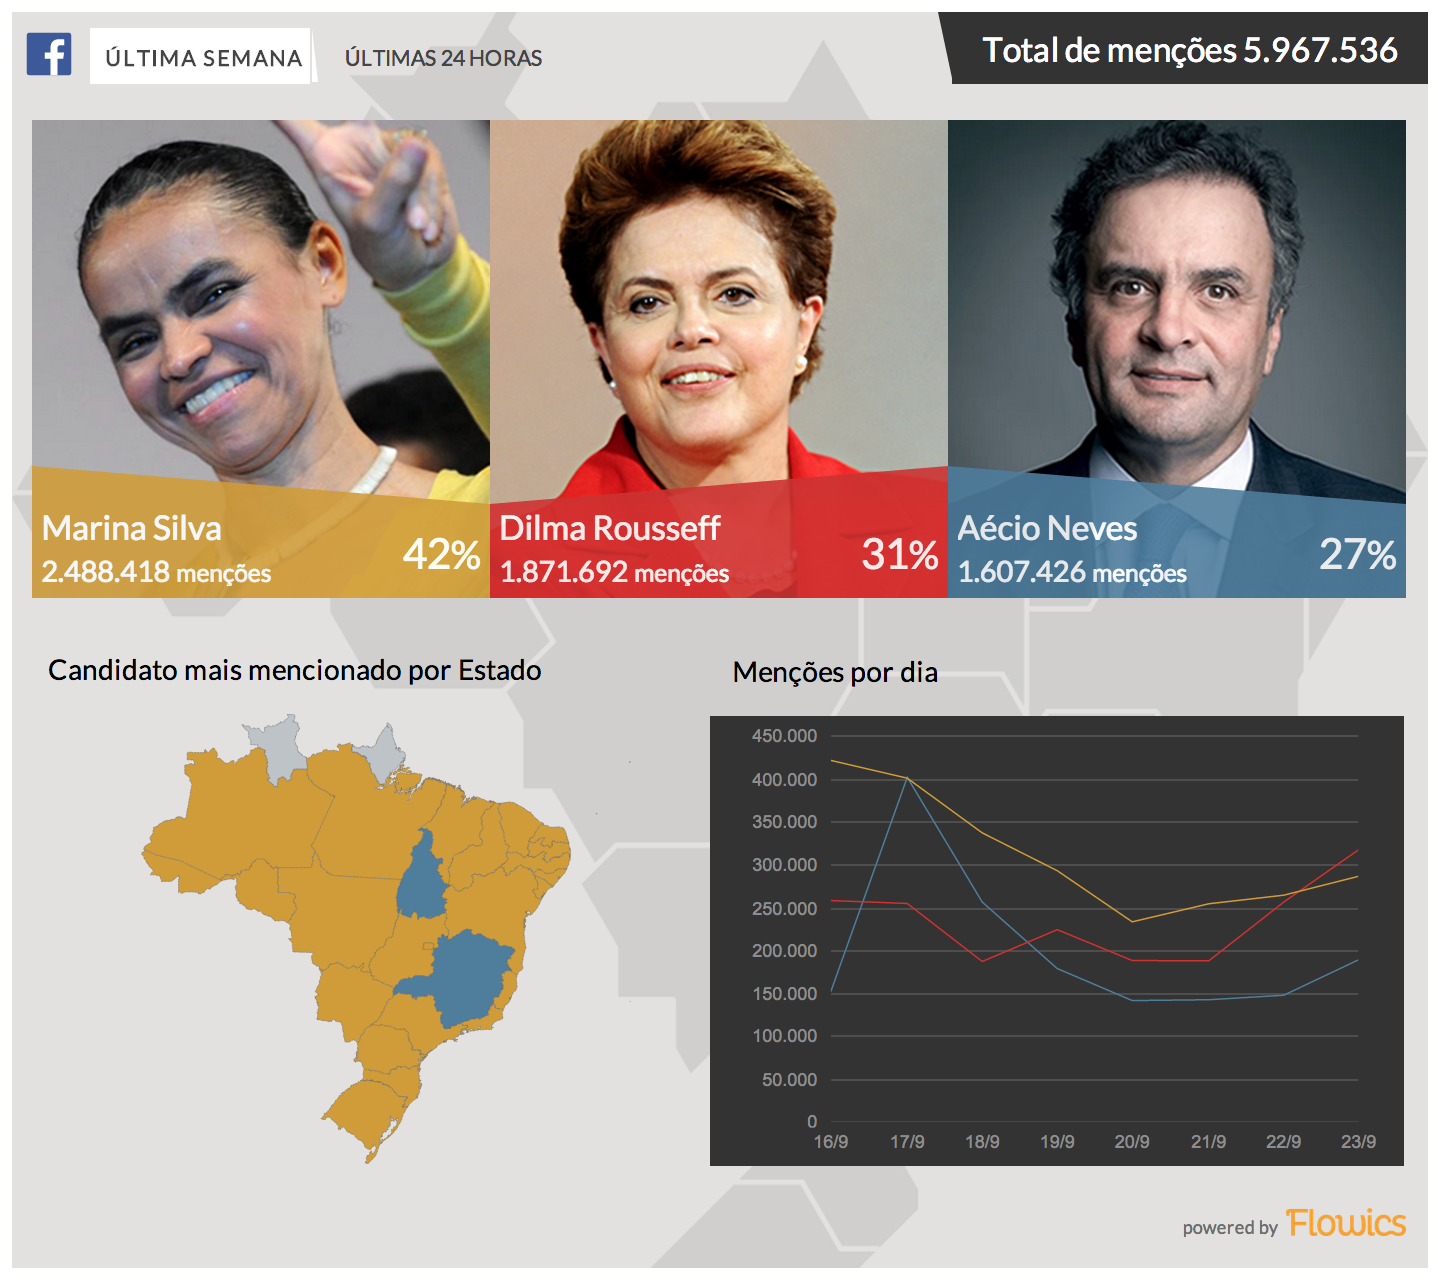 Brazil political dashboard looking at mentions of the top presidential candidates on Facebook